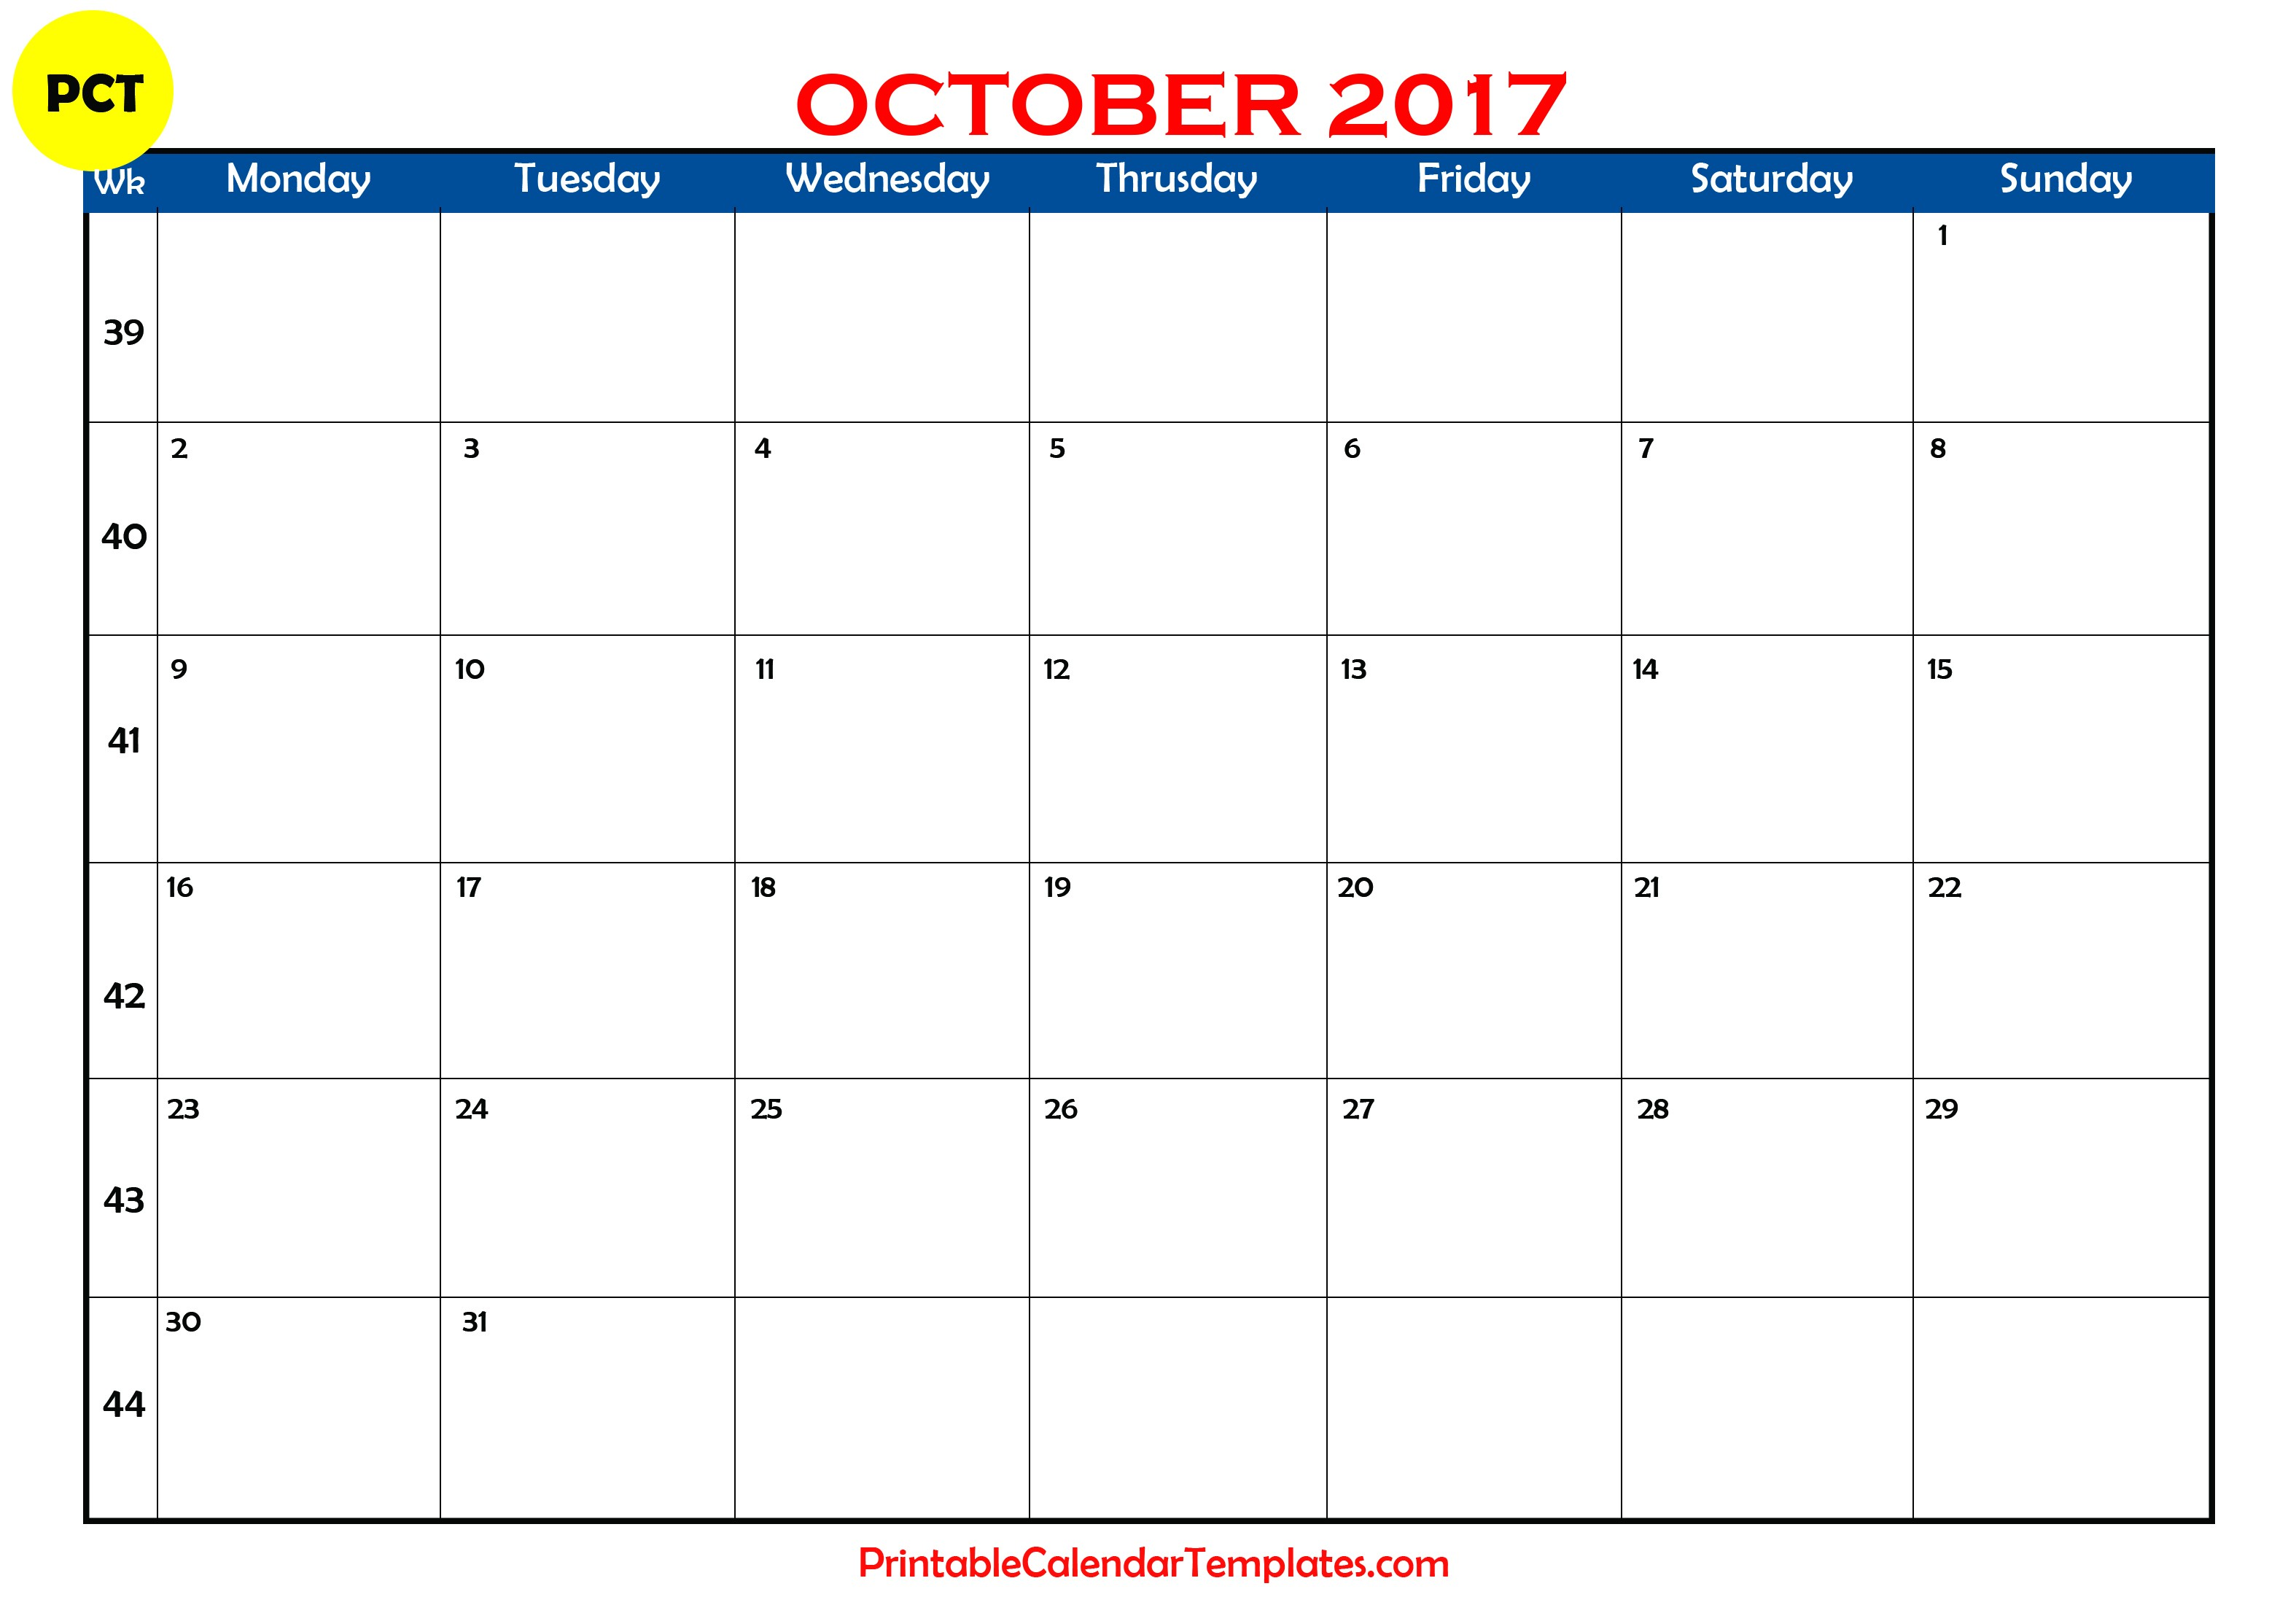 October 2017 Calendar Template printable pdf download